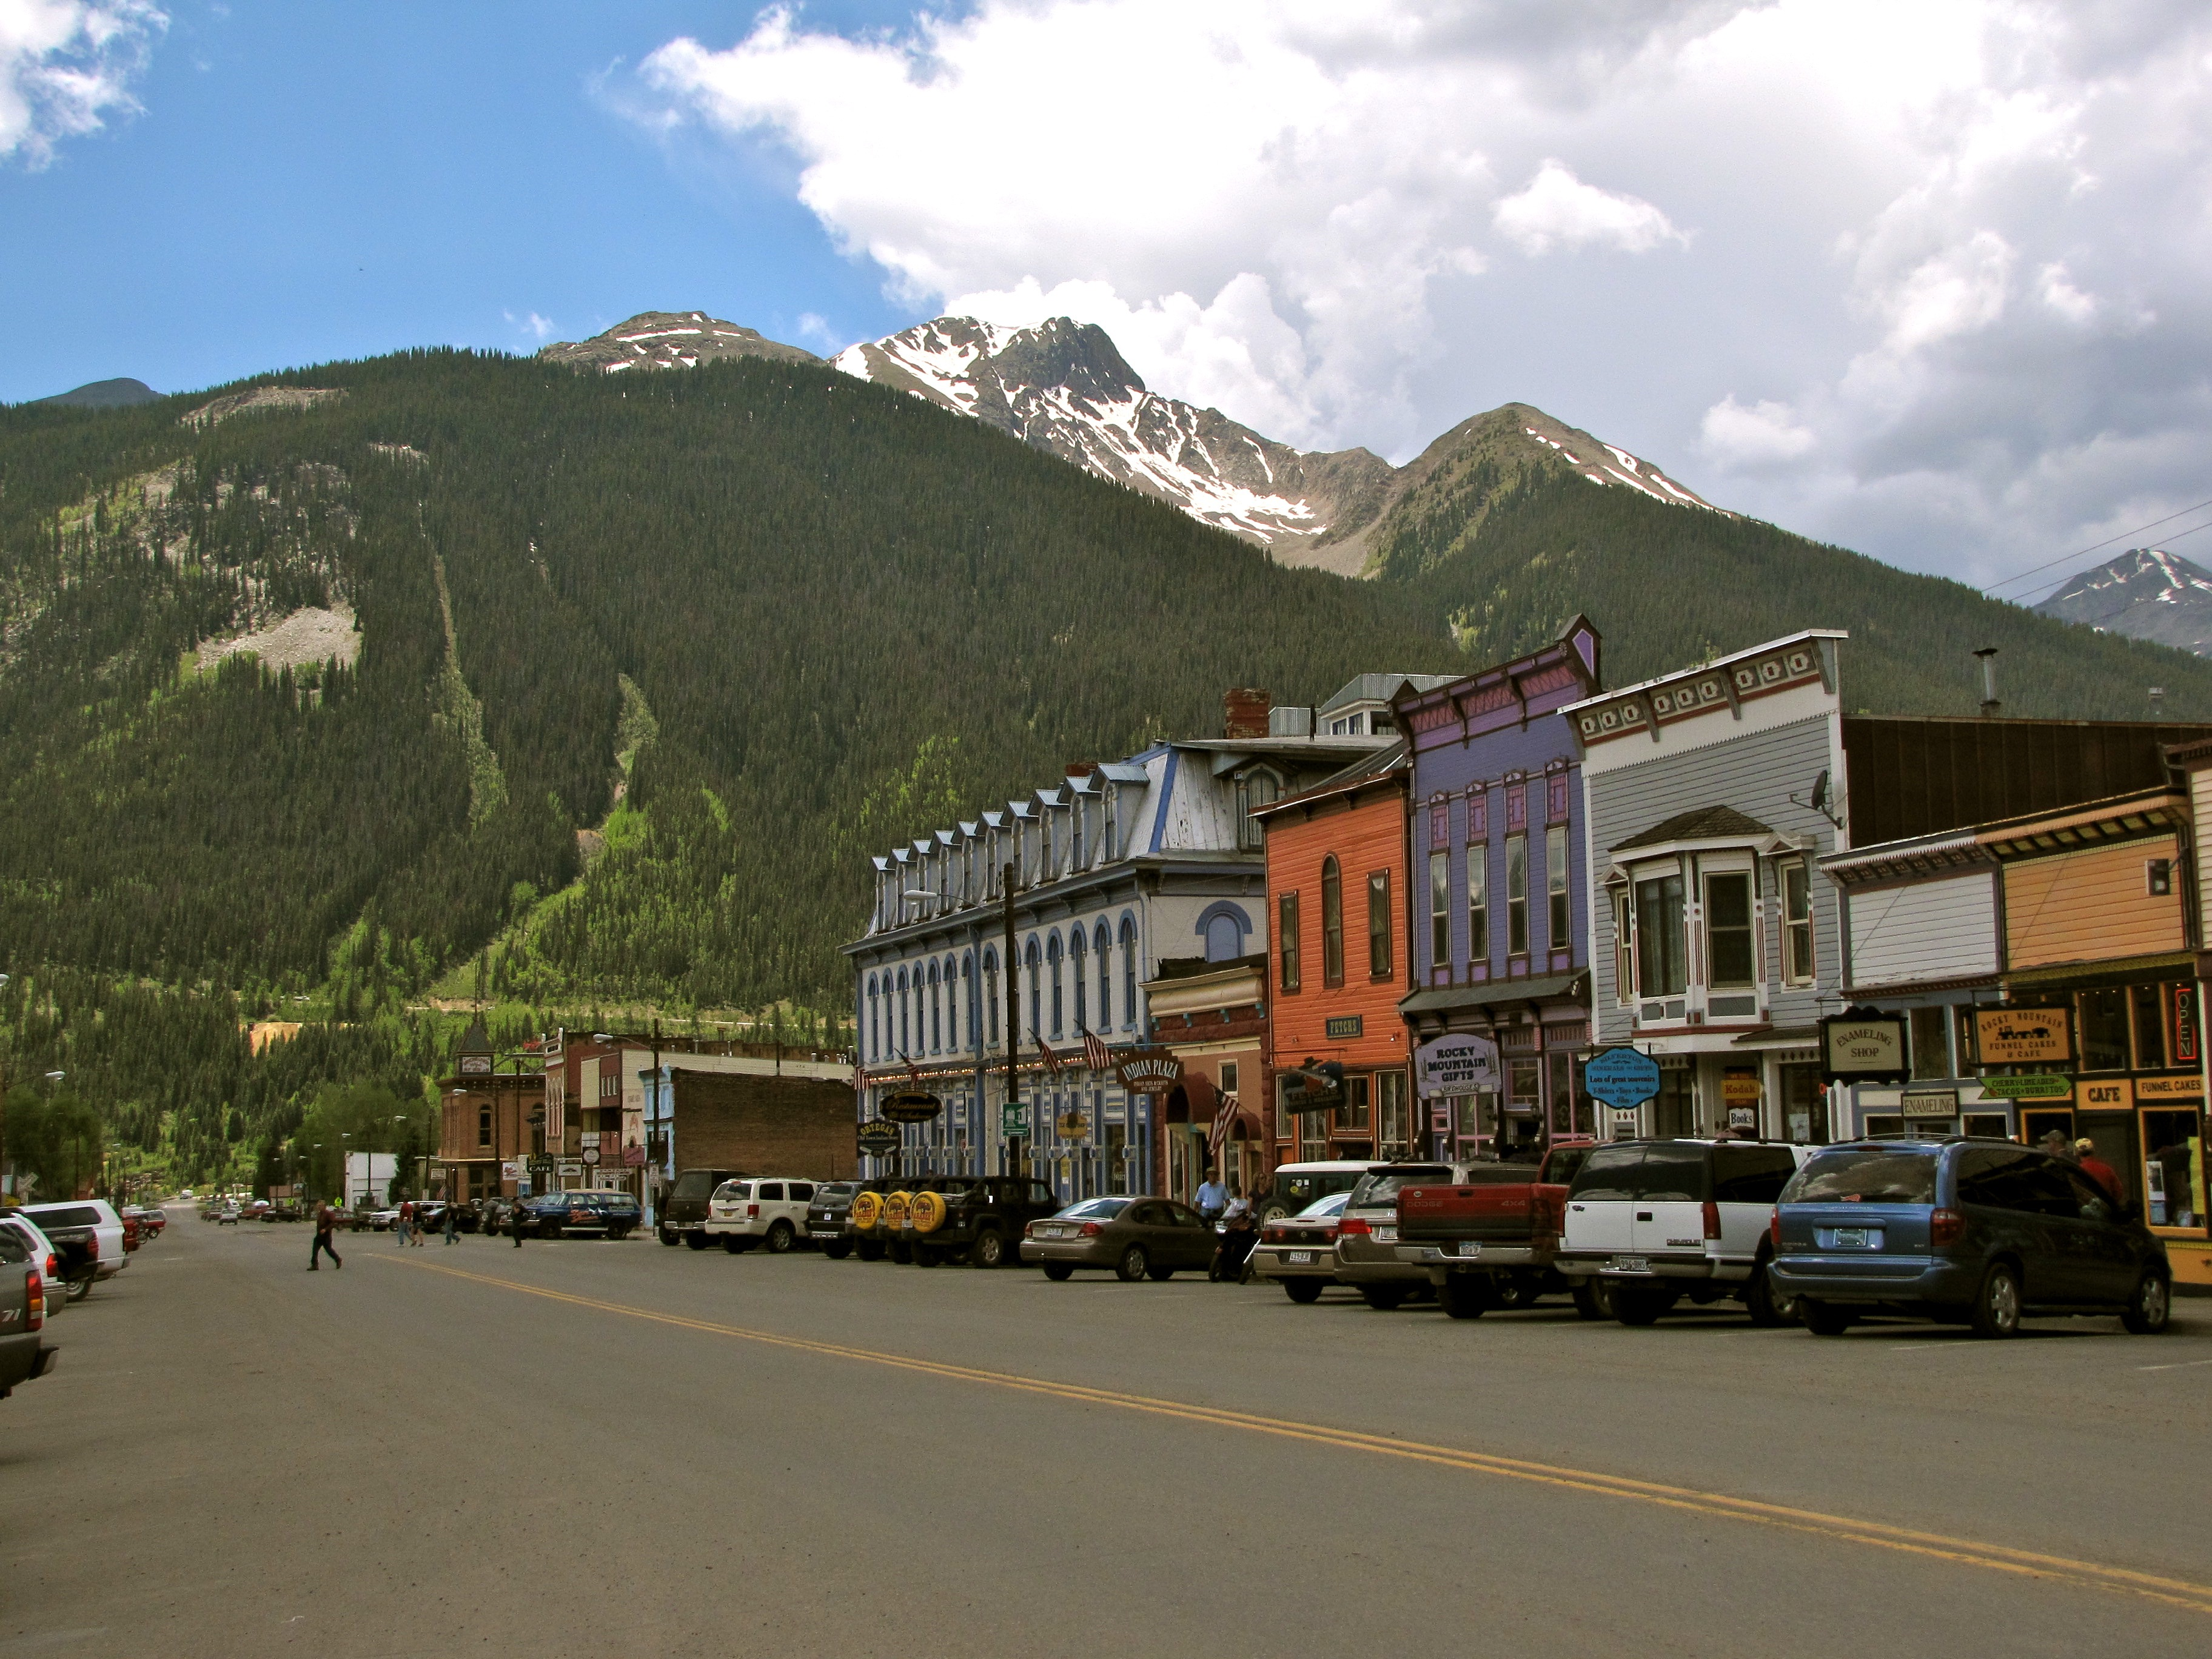 Downtown Silverton, von Alex Reinhart / cc by-saHTTPS 65306;/// creativecommons.org//licenses//by-sa//3.0Seite: 1